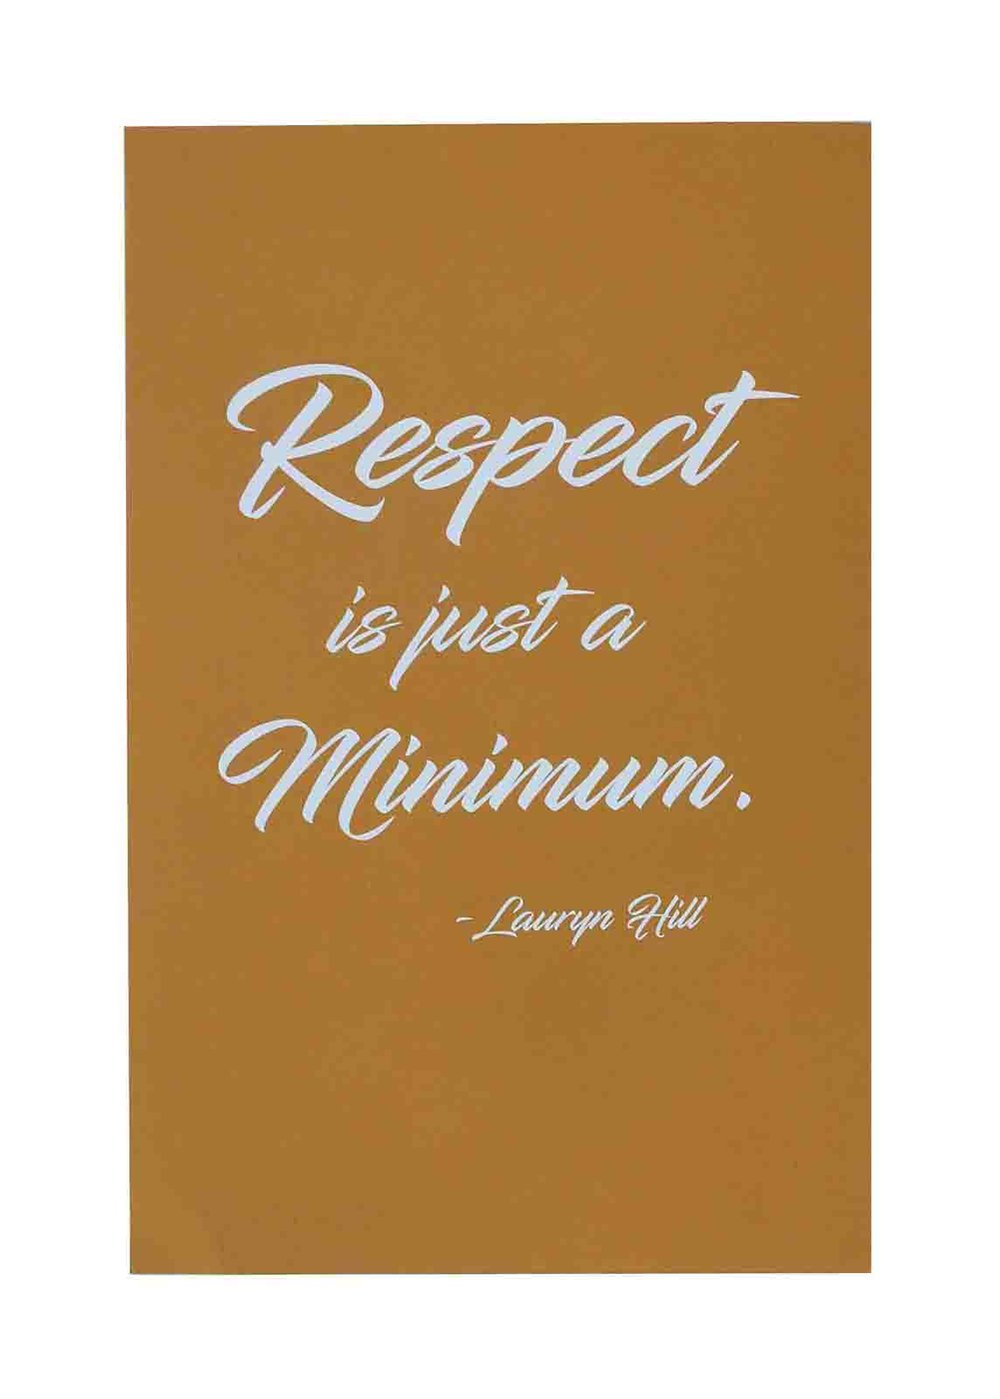 Ape_Bleakney_'Respect Is Just A Minimum' Women's March Poster, on Construction Safety Orange, 12.5''x19''.jpg